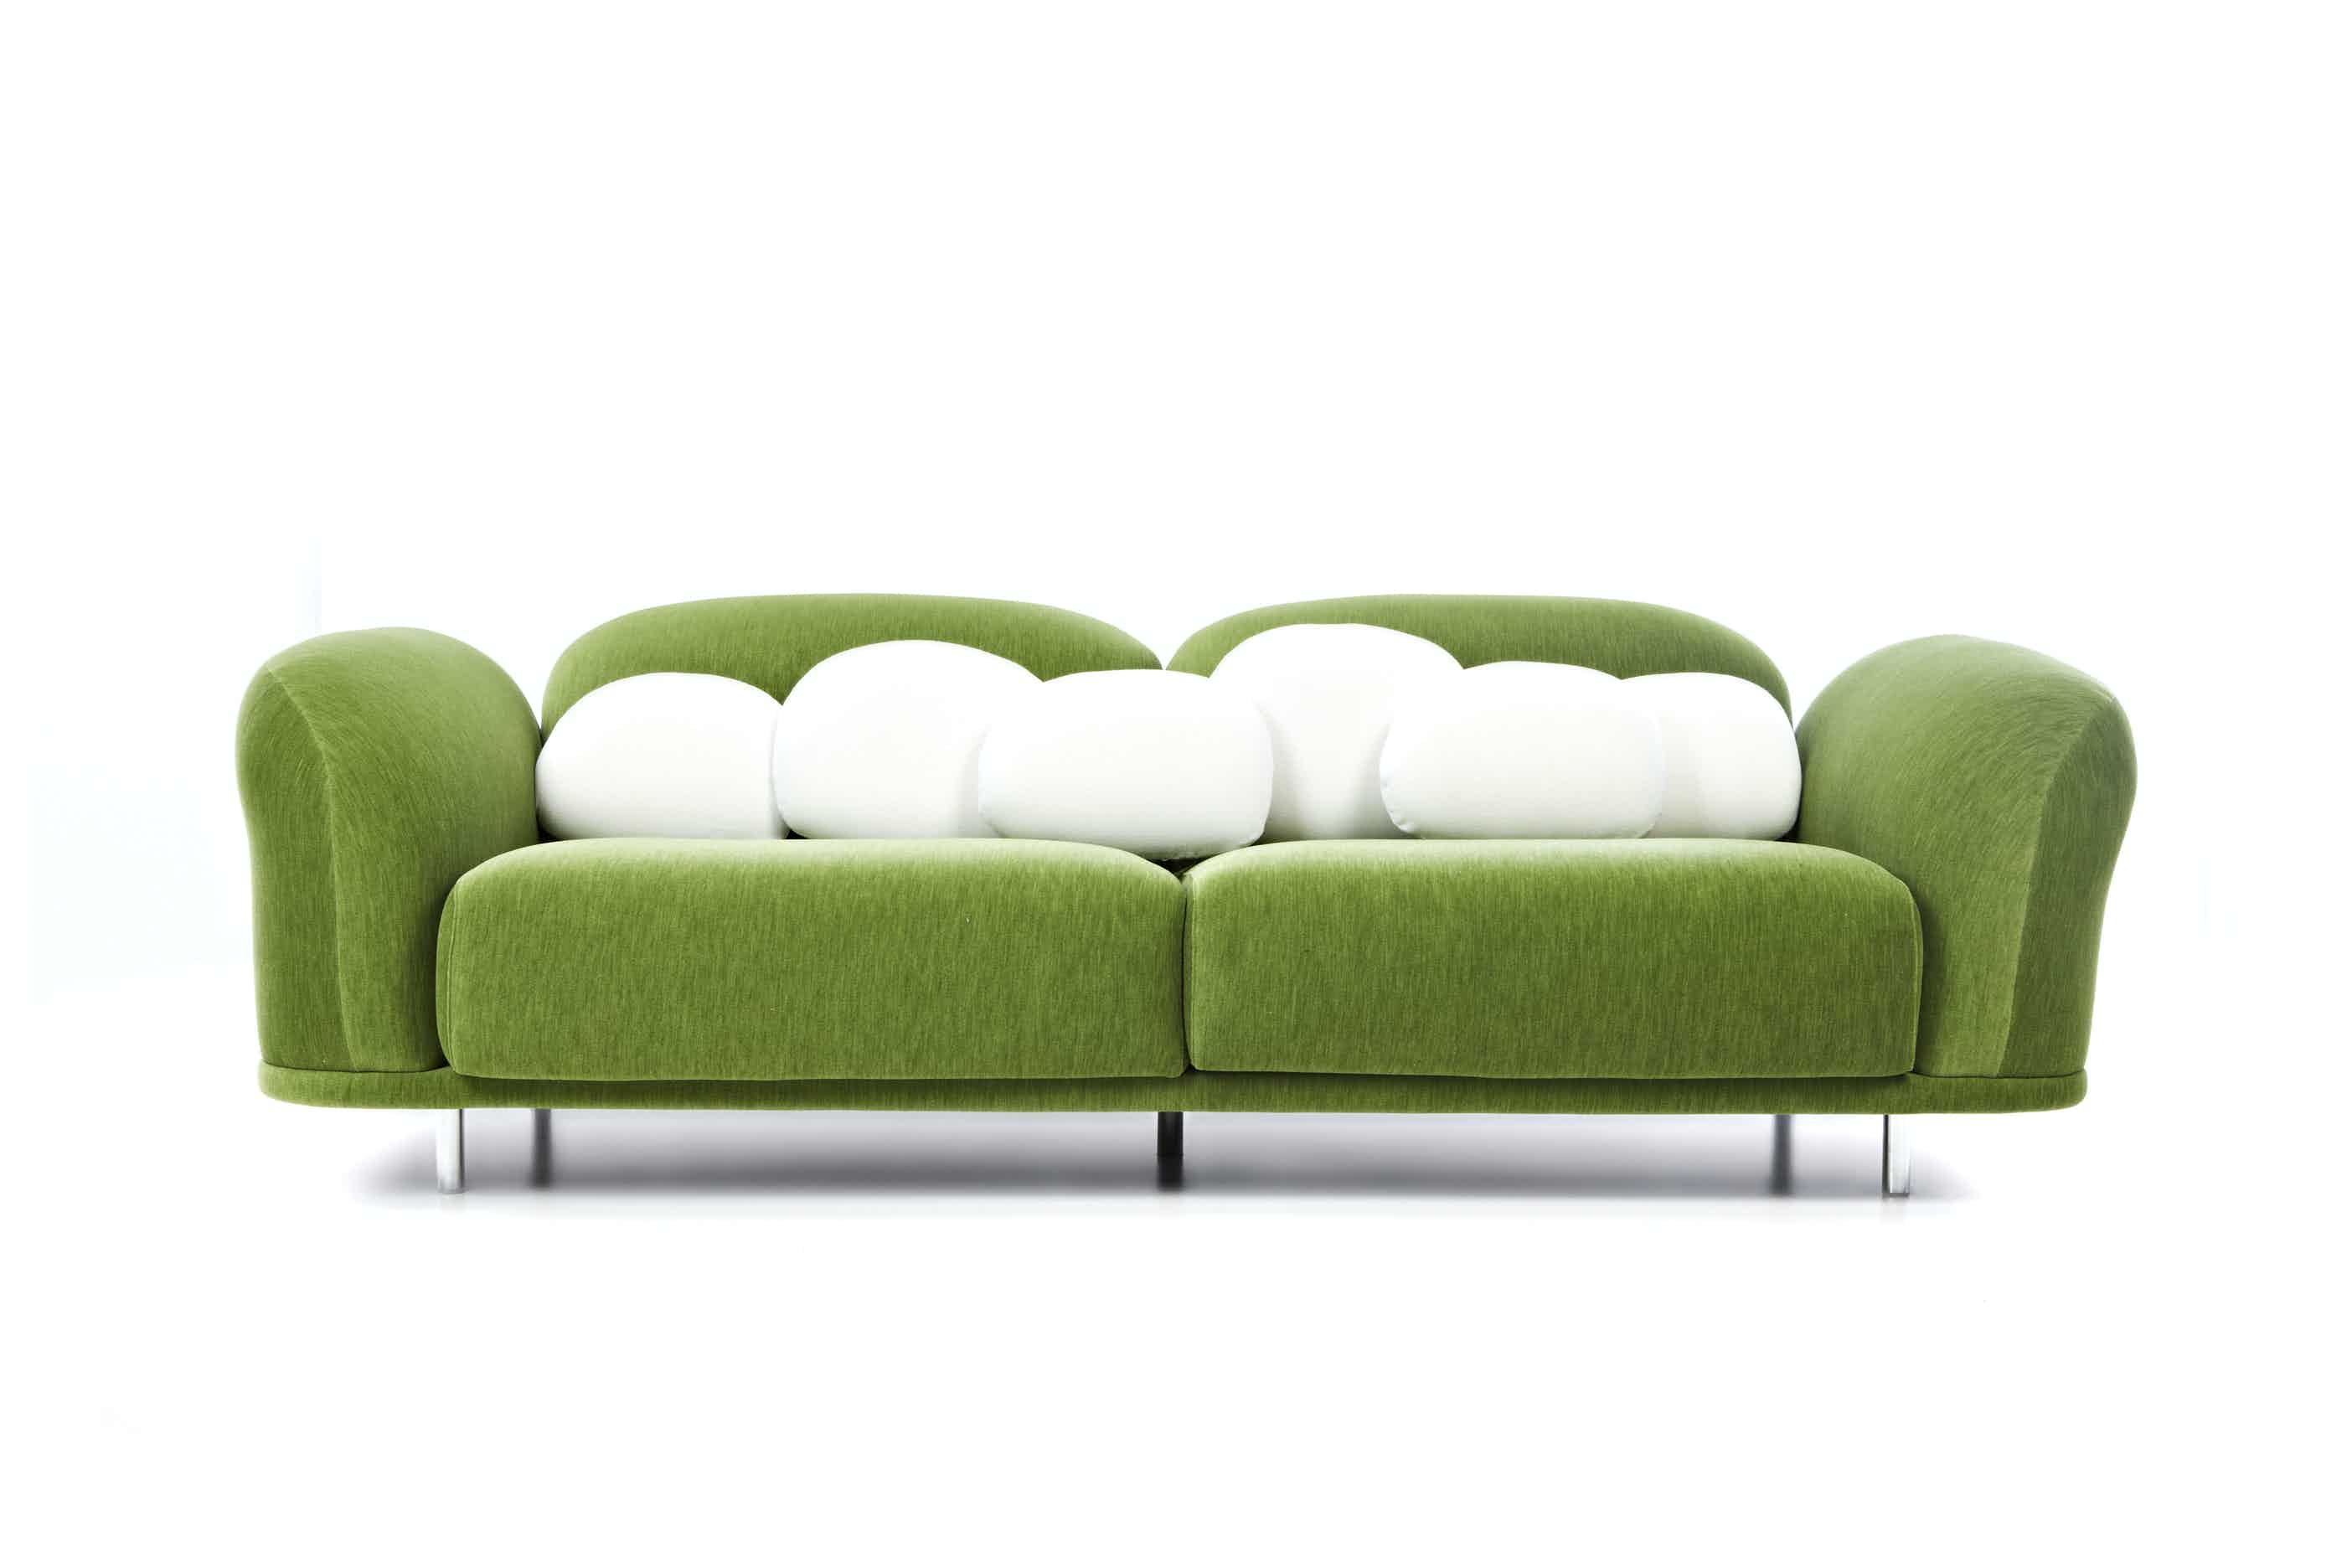 Moooi cloud sofa green pillow haute living